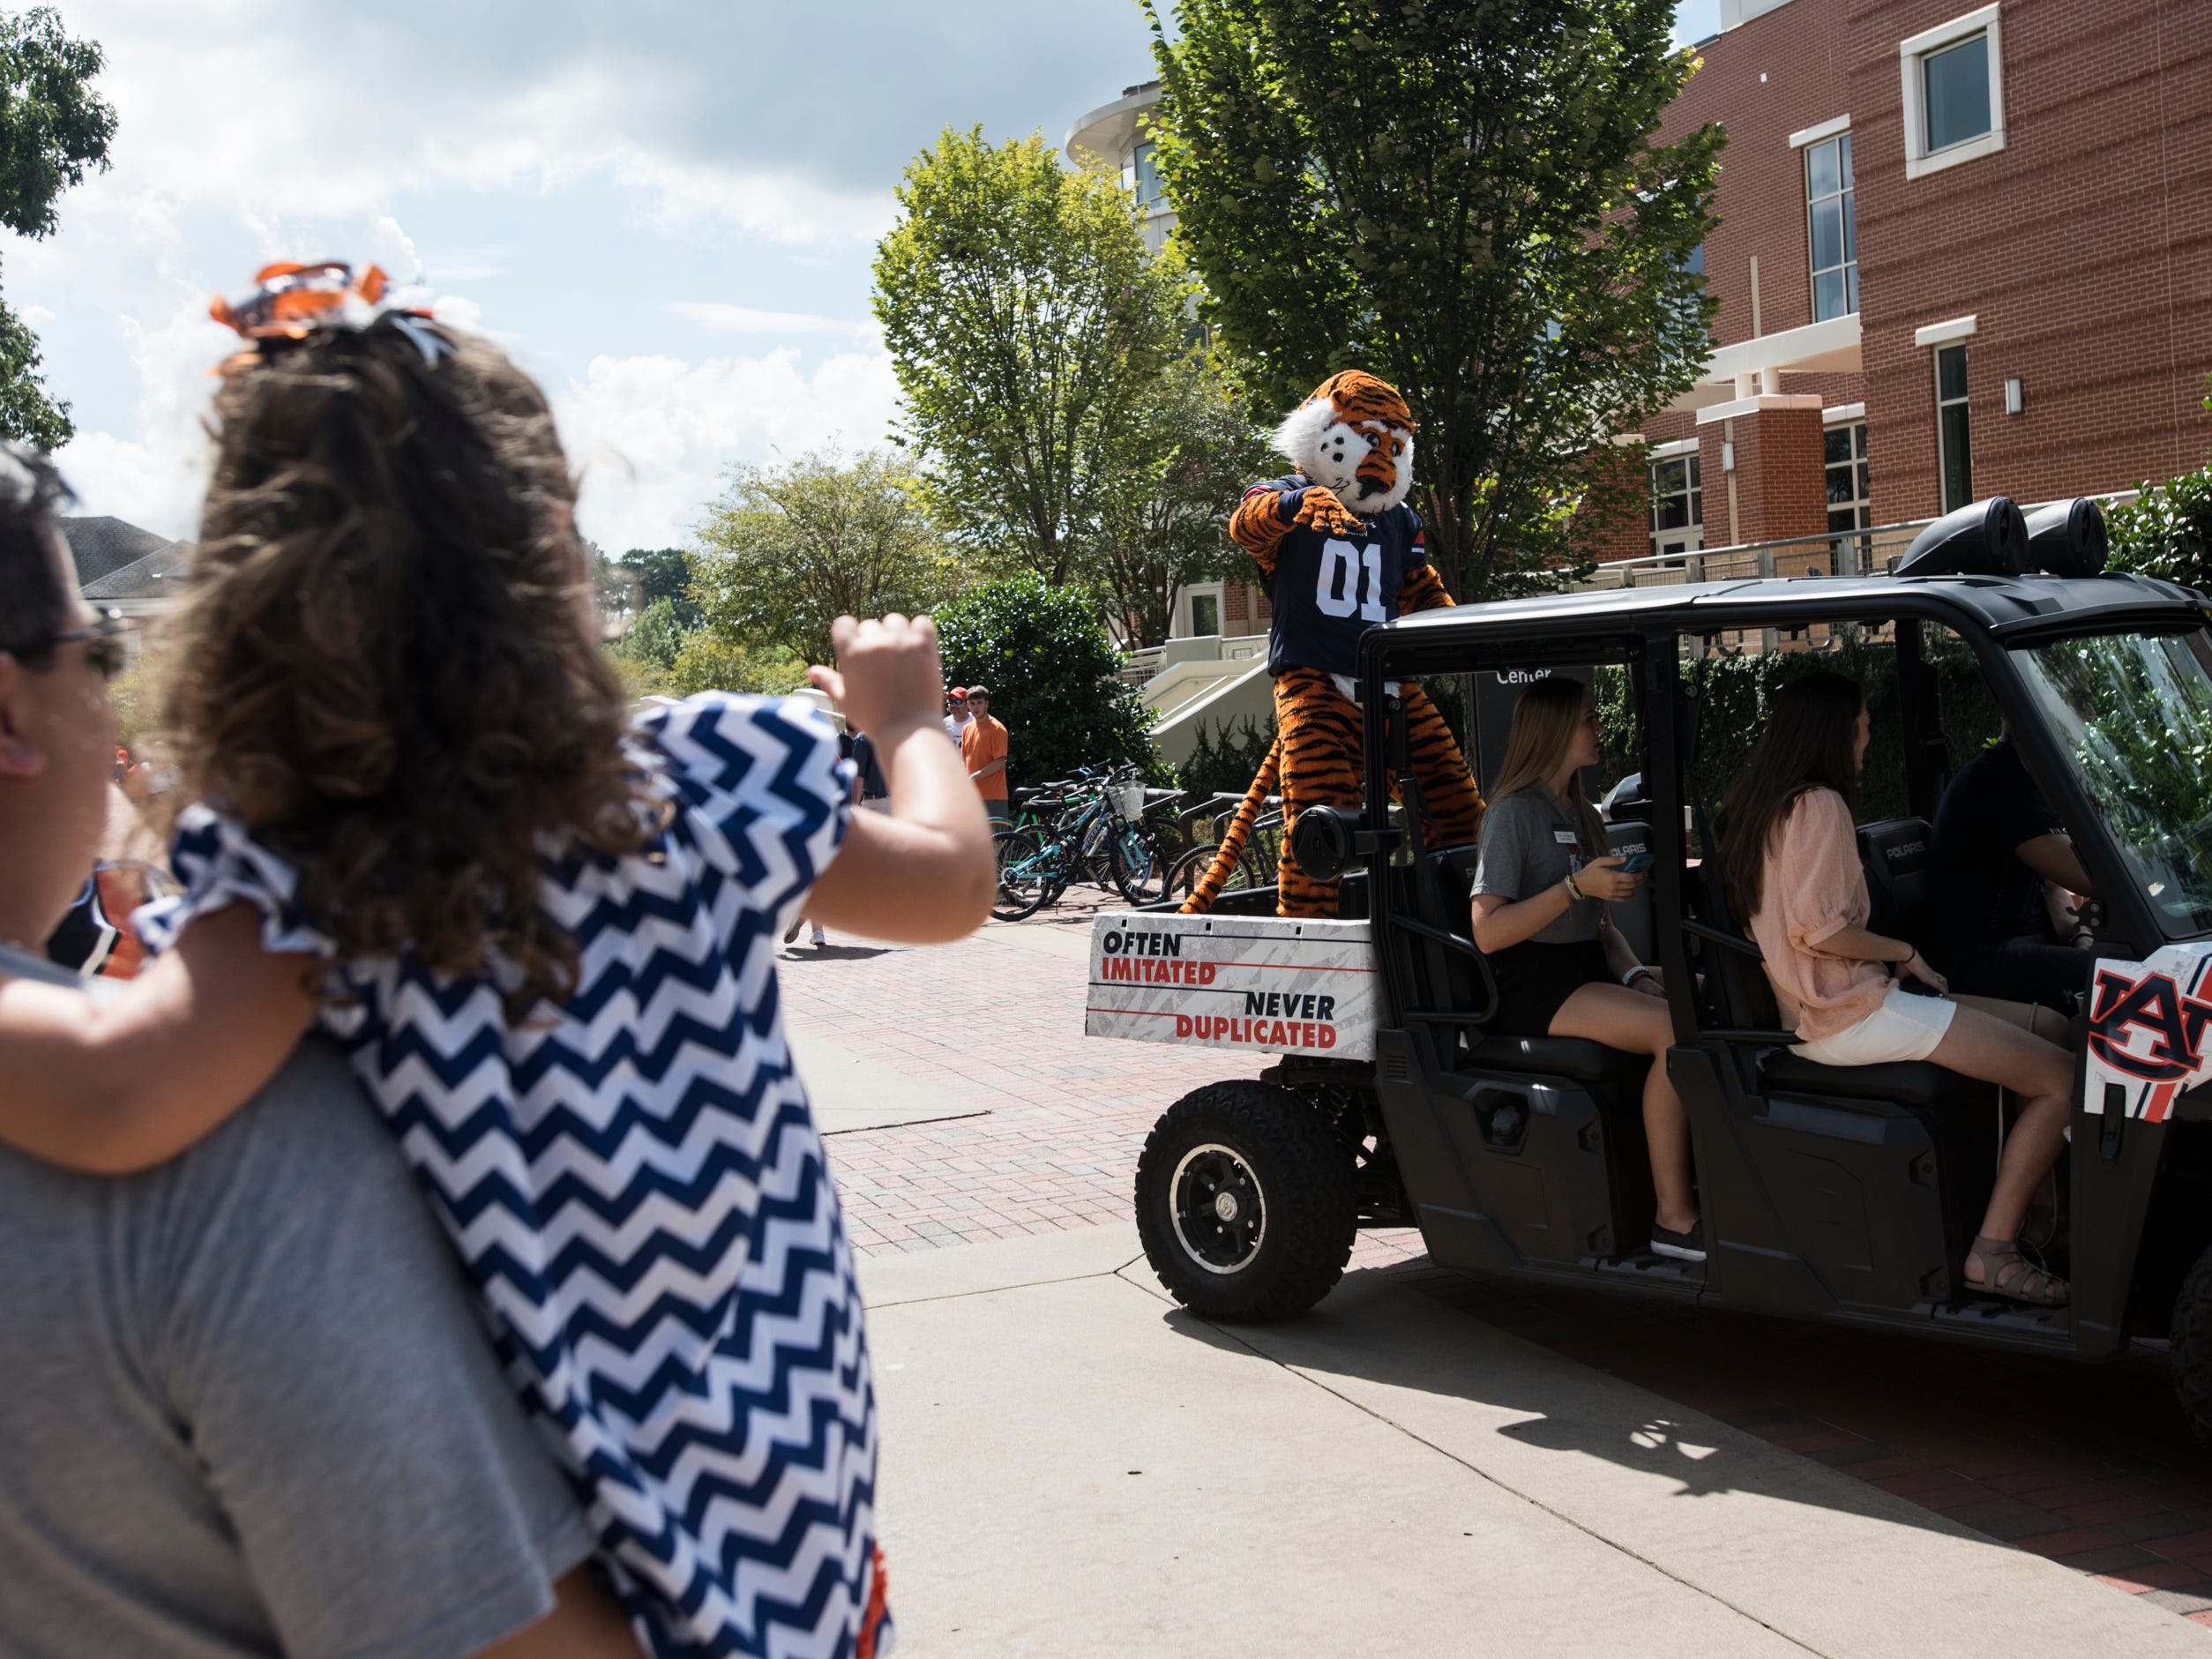 Fans wave at Auburn mascot, Aubie, as he drives around campus outside Jordan-Hare Stadium in Auburn, Ala., on Saturday, Sept. 29, 2018.